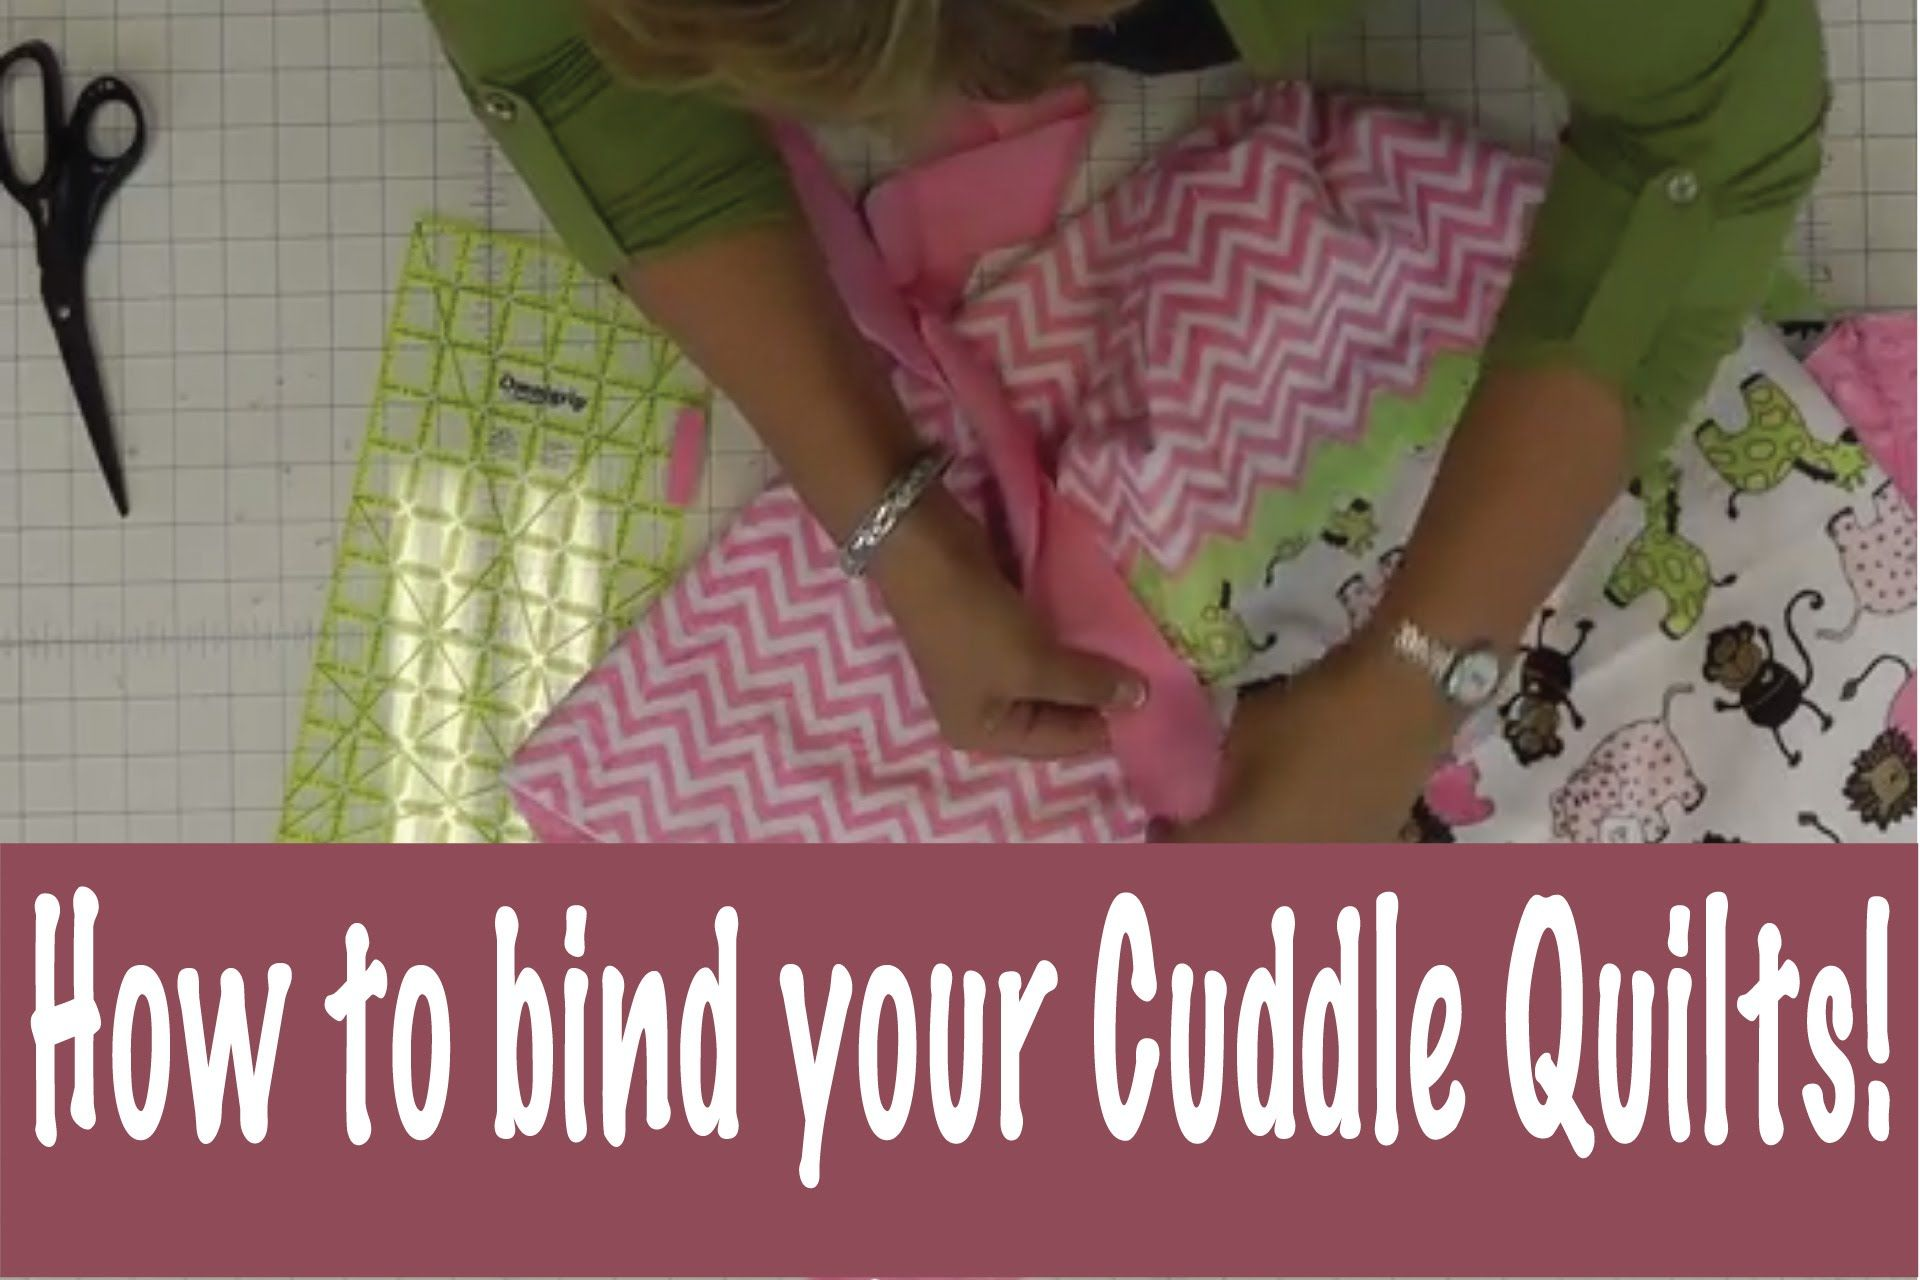 Jenny Doan From Missouri Star Quilt Company Teaches Us How